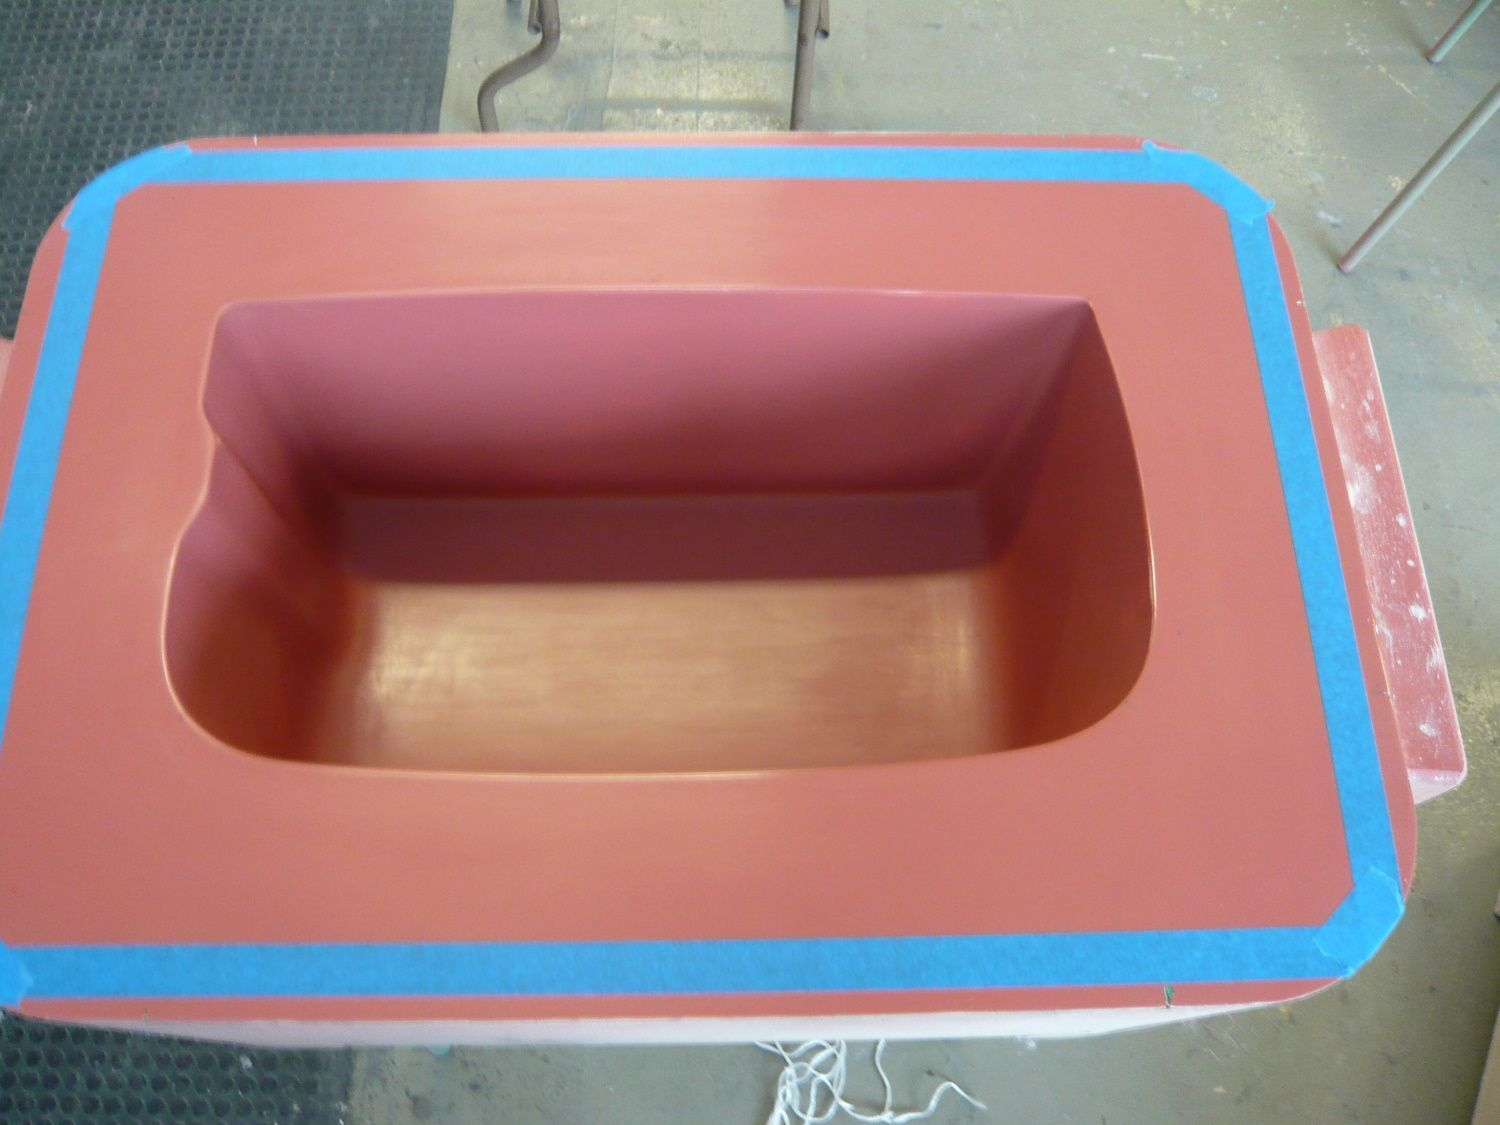 Top view of musical instrument mold